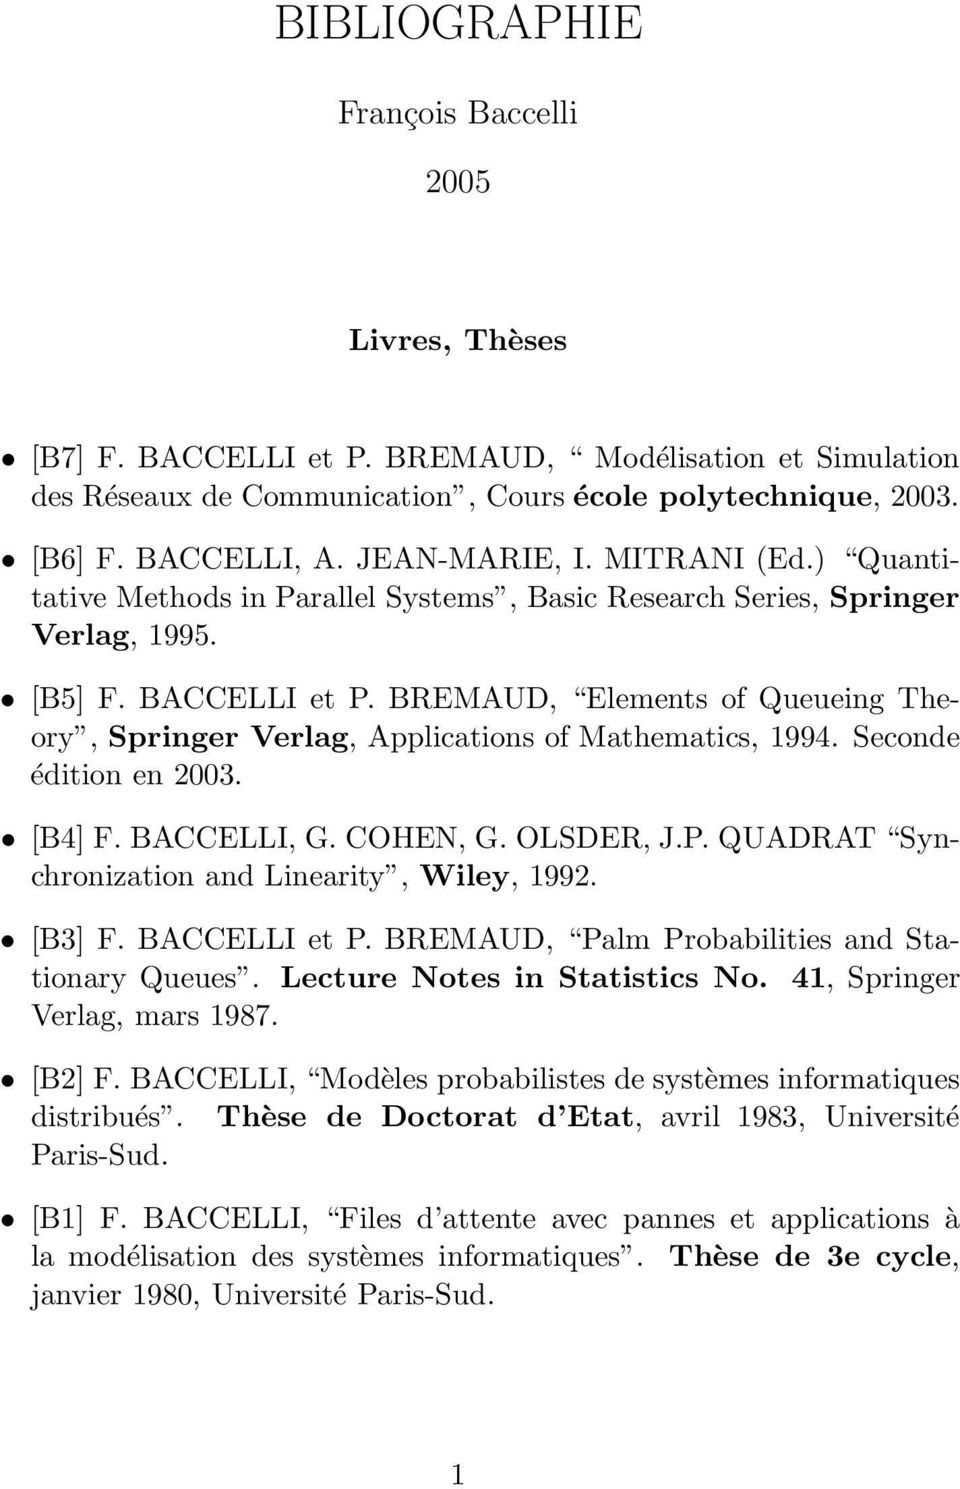 BREMAUD, Elements of Queueing Theory, Springer Verlag, Applications of Mathematics, 1994. Seconde édition en 2003. [B4] F. BACCELLI, G. COHEN, G. OLSDER, J.P.